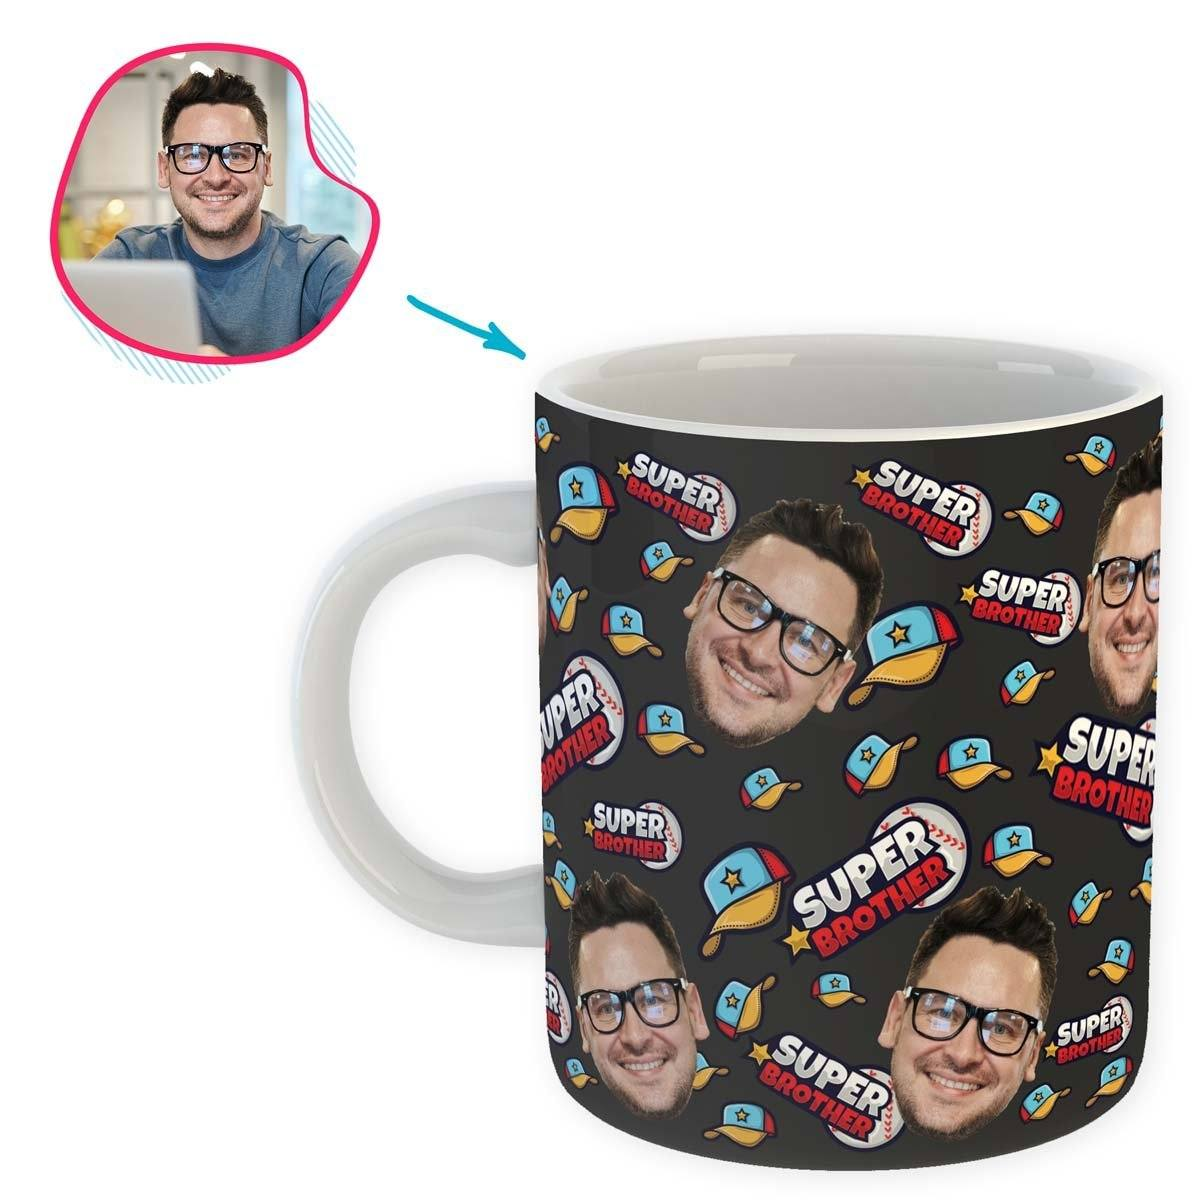 dark Super Brother mug personalized with photo of face printed on it